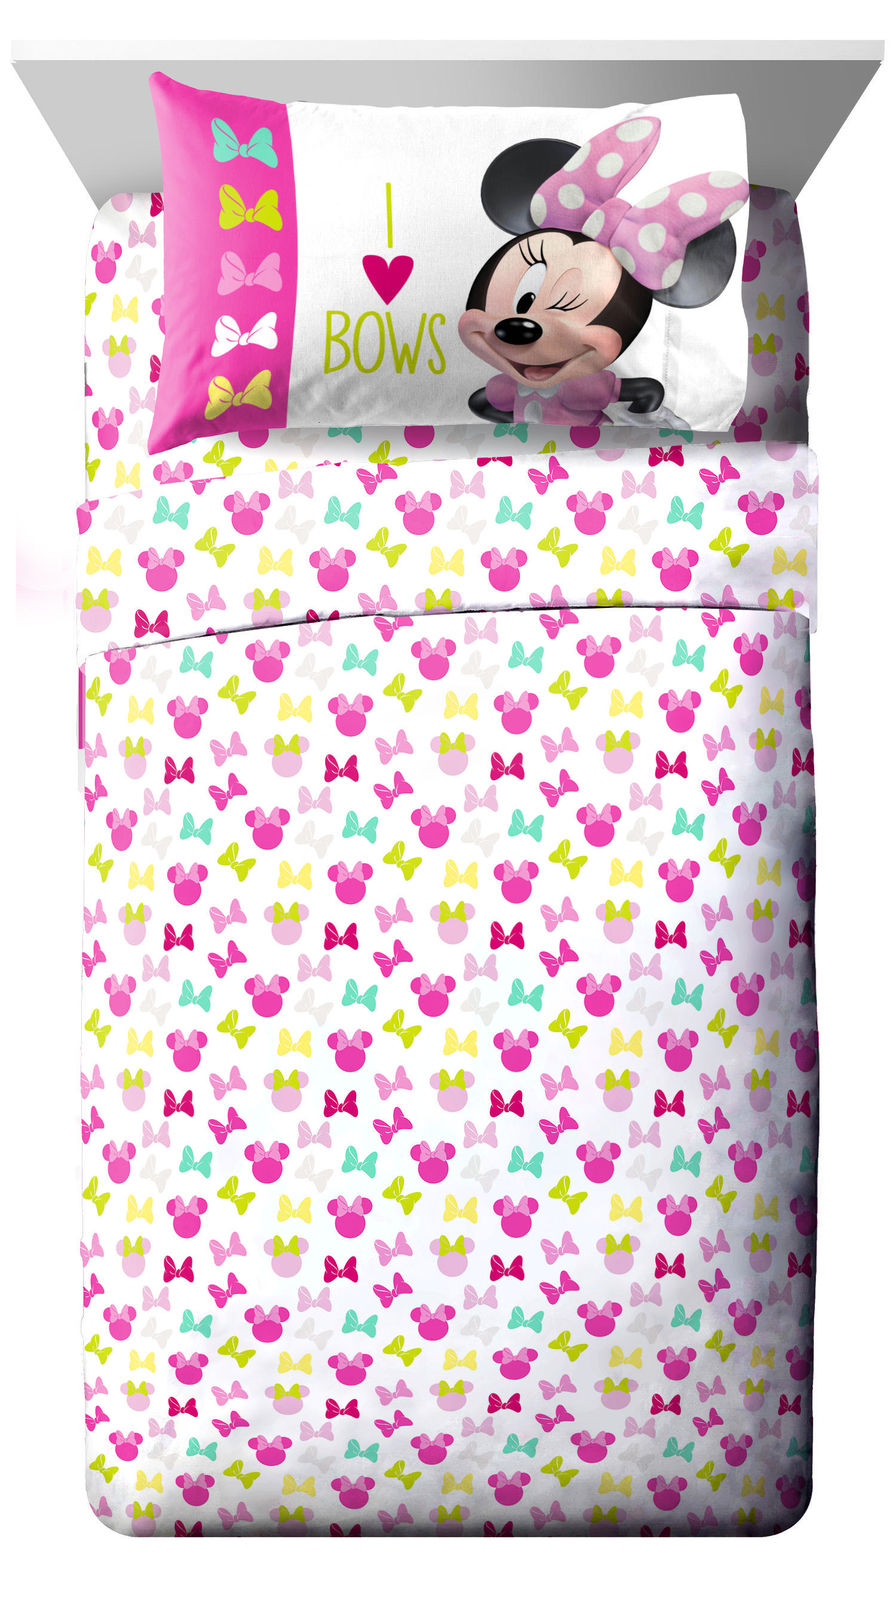 http://www.ebay.com/i/Disney-Minnie-Bowtique-3-Piece-Twin-Sheet-Set-Heart-Bows-/172888805501